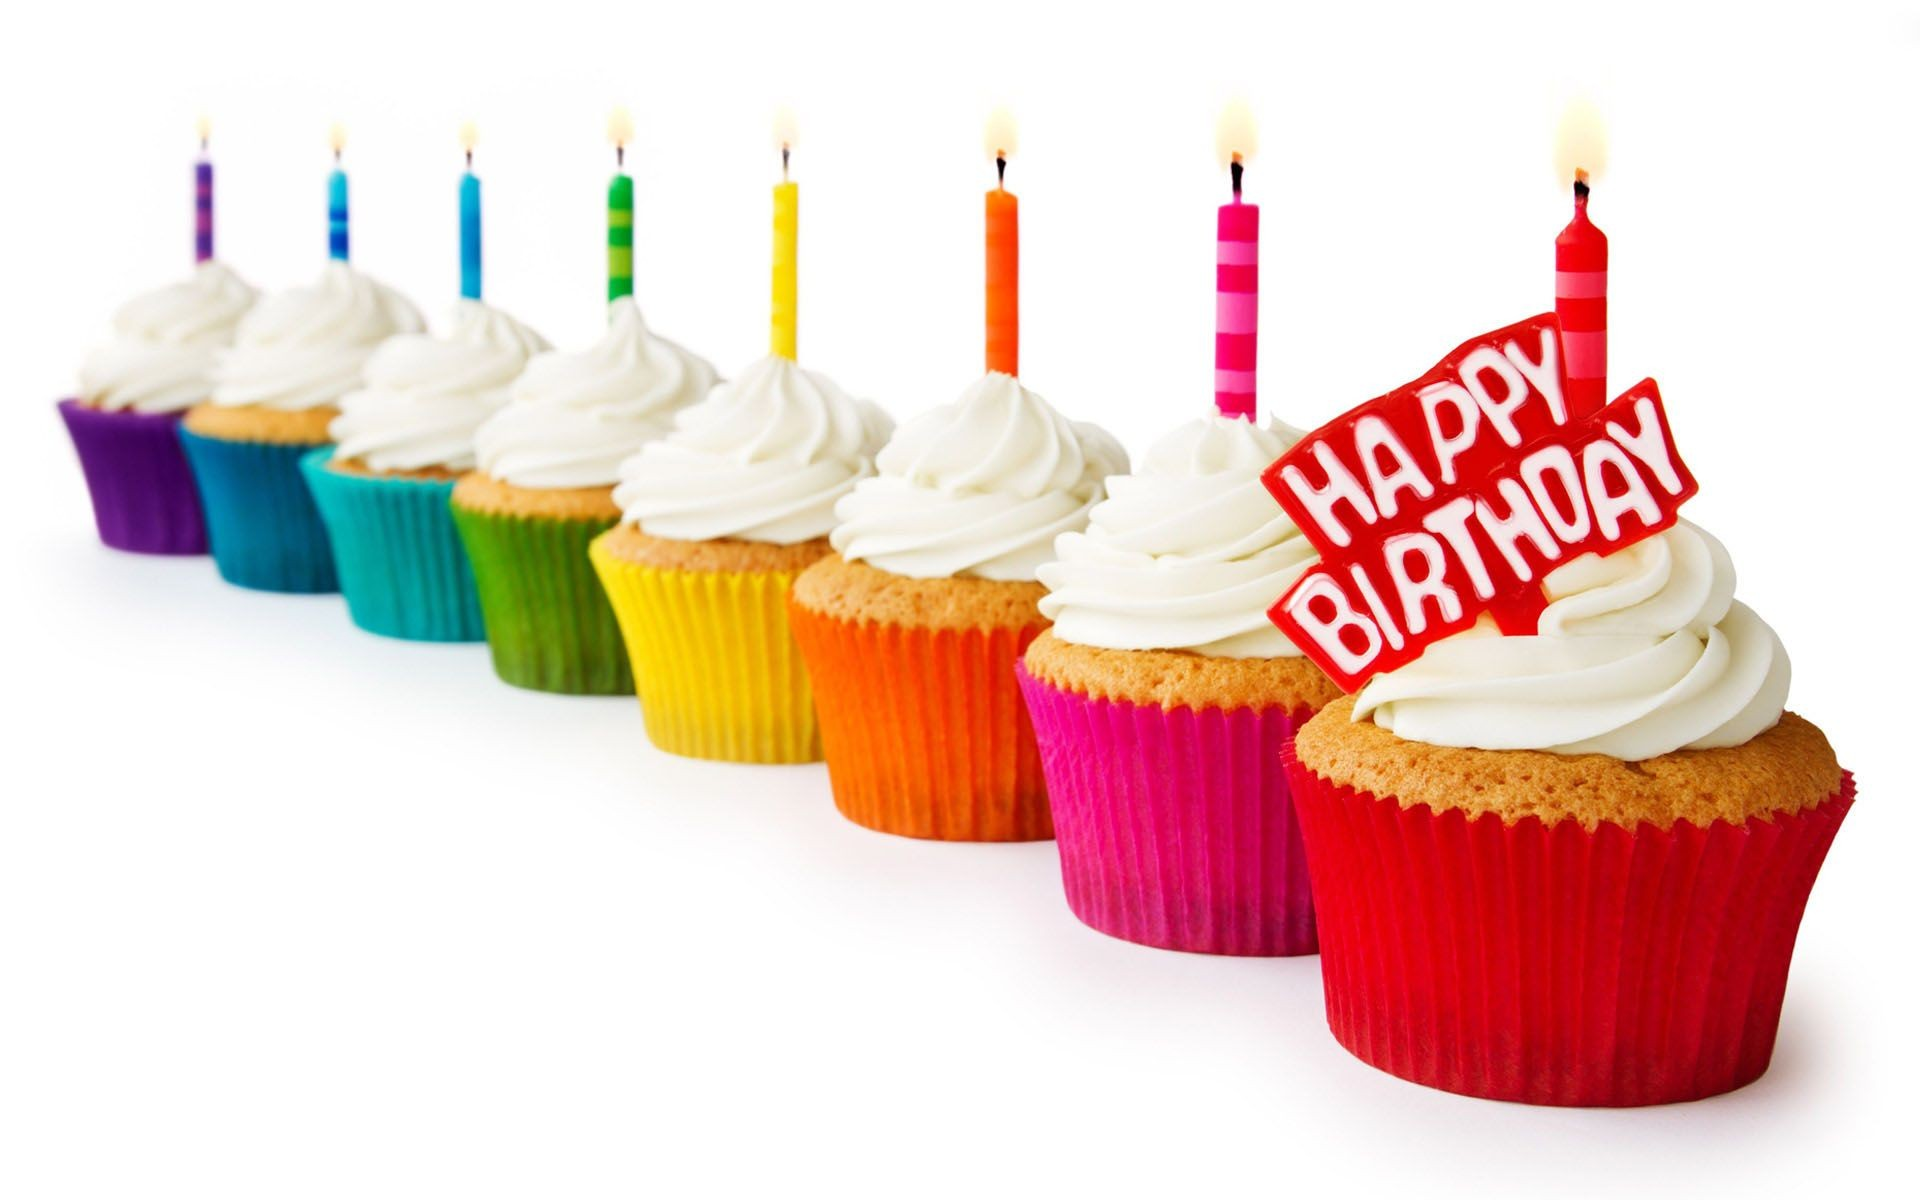 happy birthday wallpaper pictures ; 339150-download-free-happy-birthday-wallpaper-1920x1200-for-ipad-2